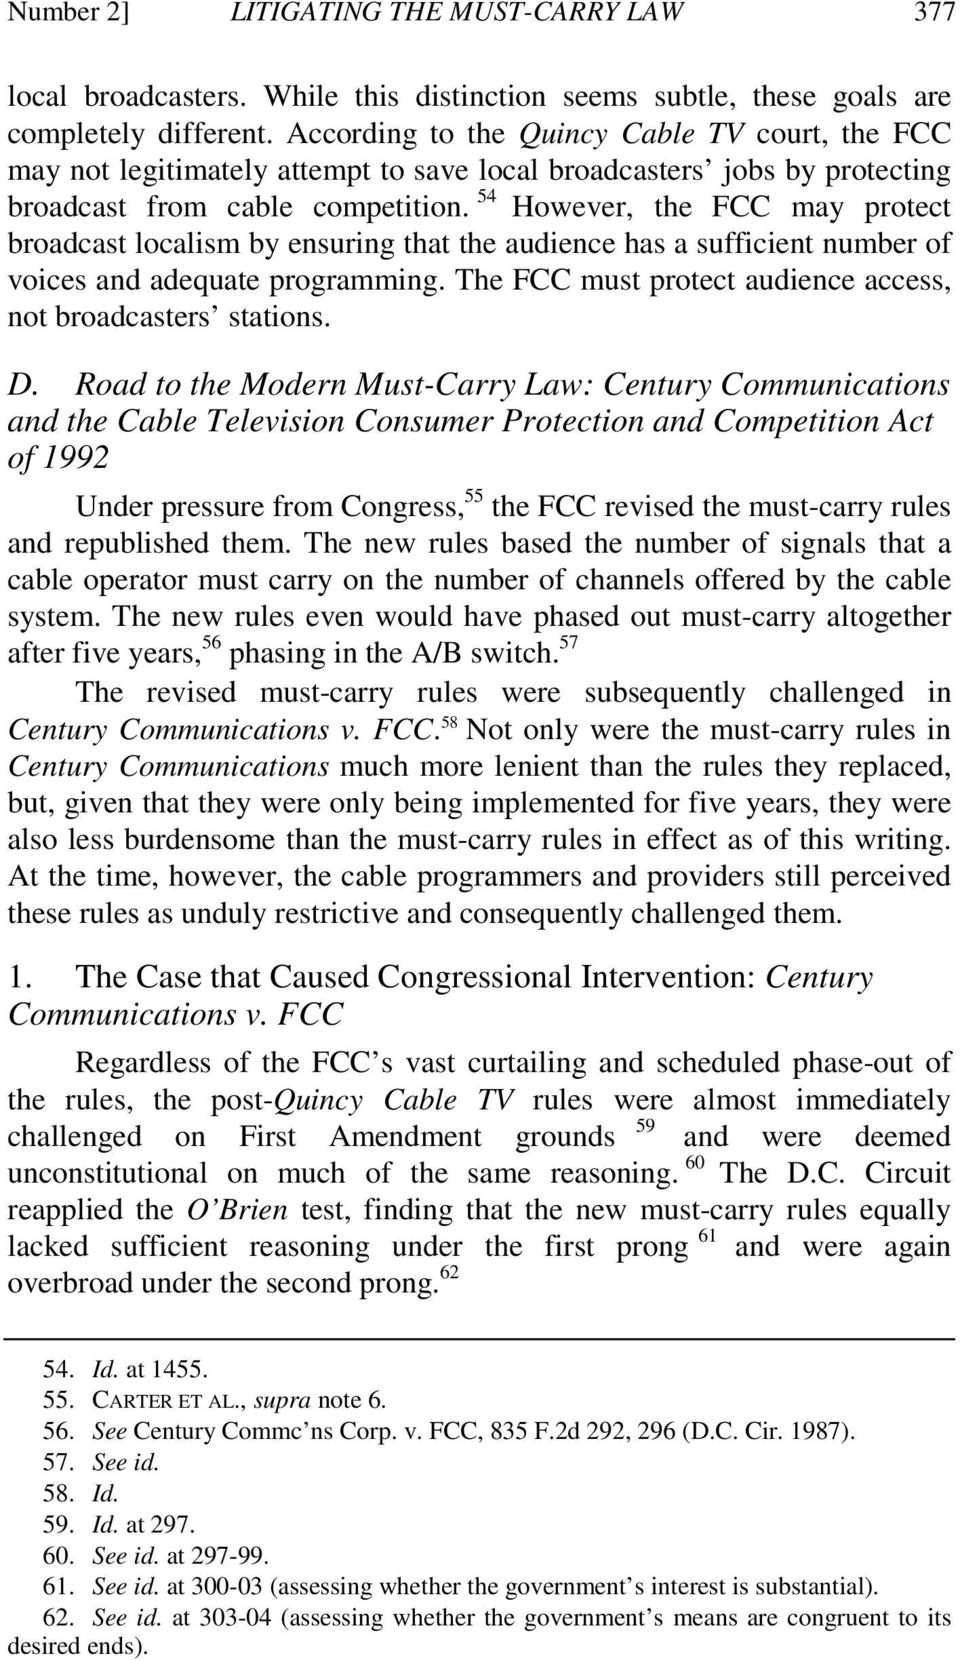 54 However, the FCC may protect broadcast localism by ensuring that the audience has a sufficient number of voices and adequate programming.